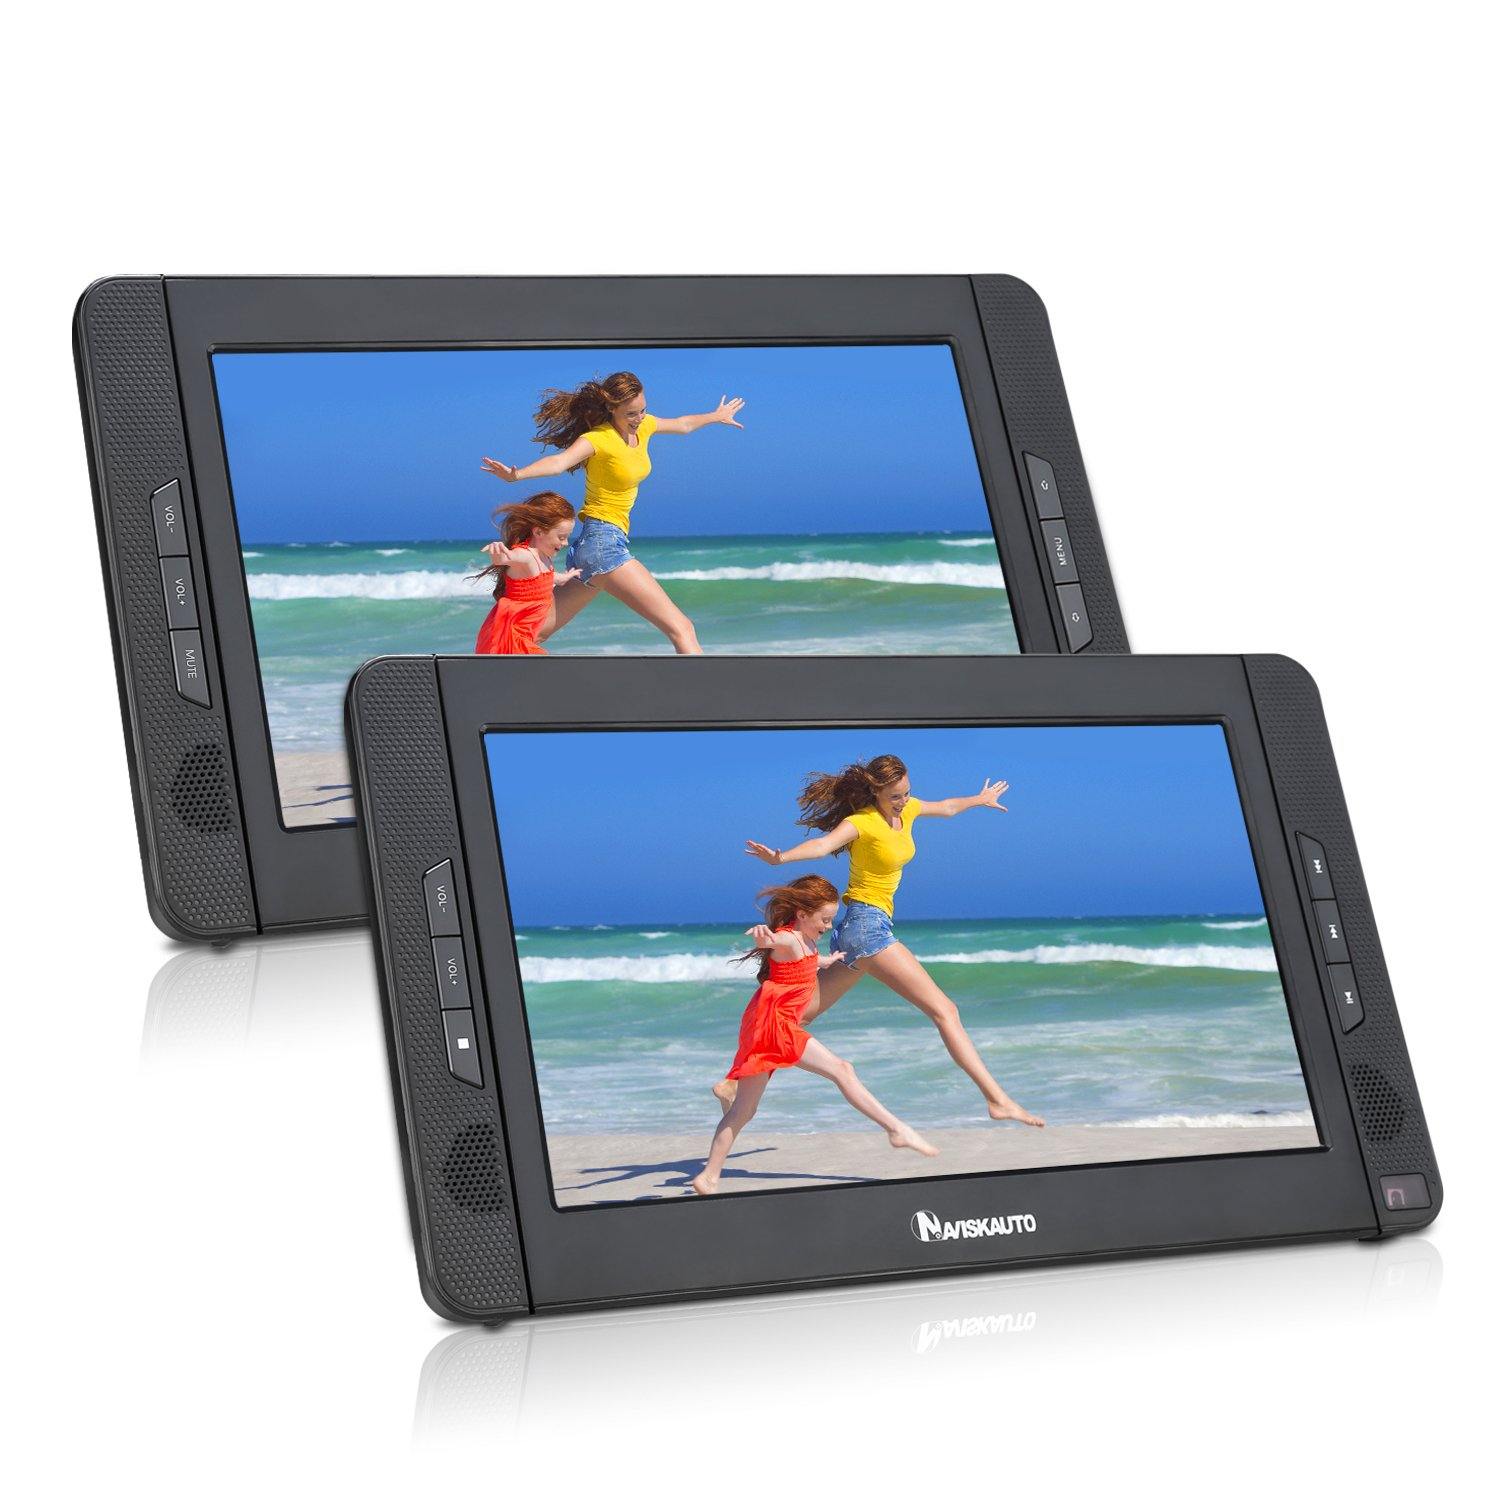 10.1'' Dual Screen Portable DVD Player with 5-Hour Built-In Rechargeable Battery-Black (Host DVD Player+ Slave Monitor) by NaviSkauto